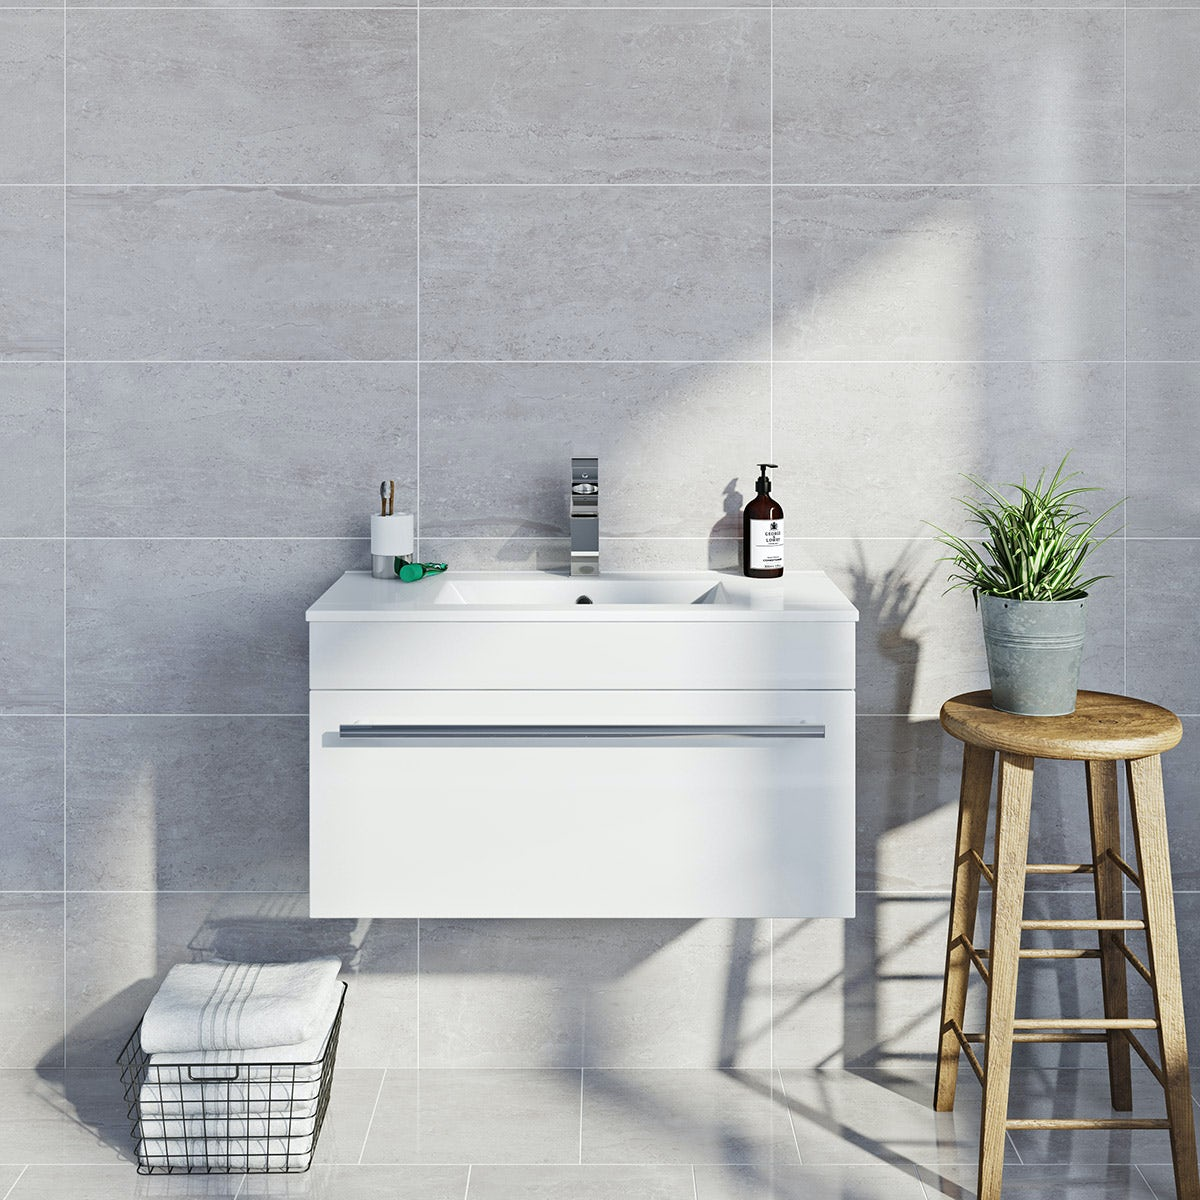 British Ceramic Tile Lux dove grey gloss tile 298mm x 598mm - Sold by Victoria Plum